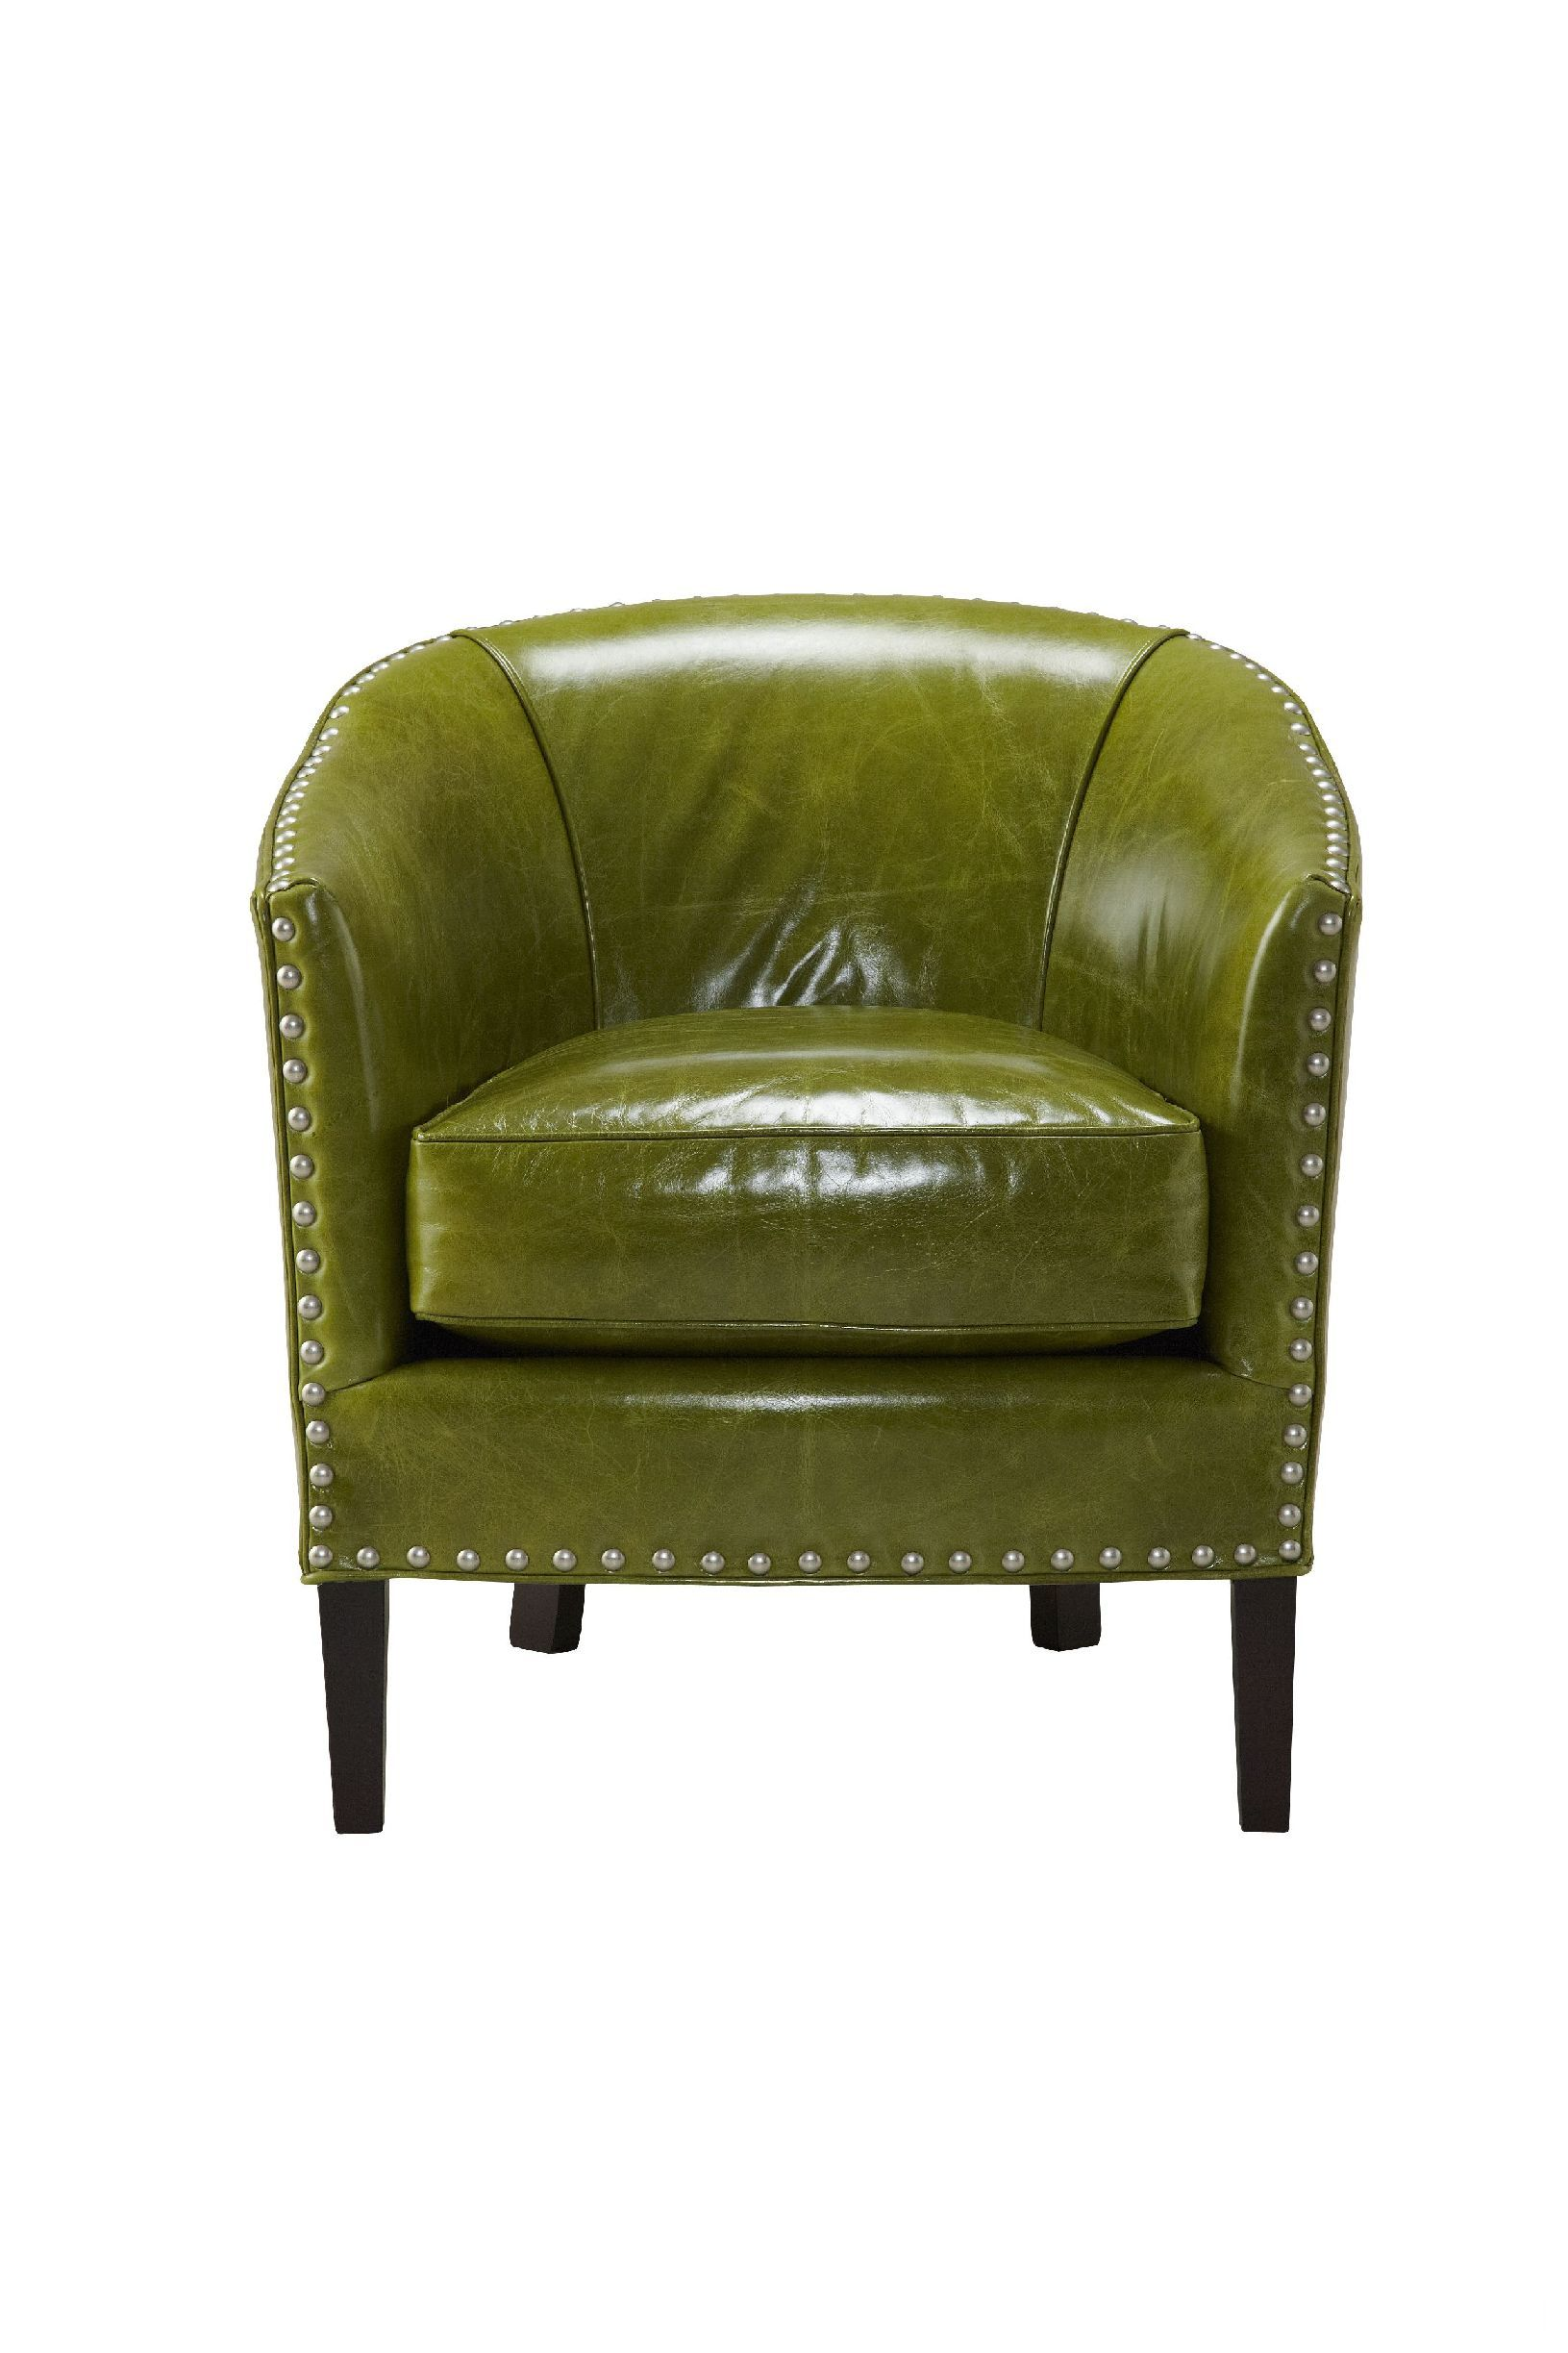 Southern Furniture Living Room Burke Chair 49943   M Jacobs Family Of  Stores   Eugene,